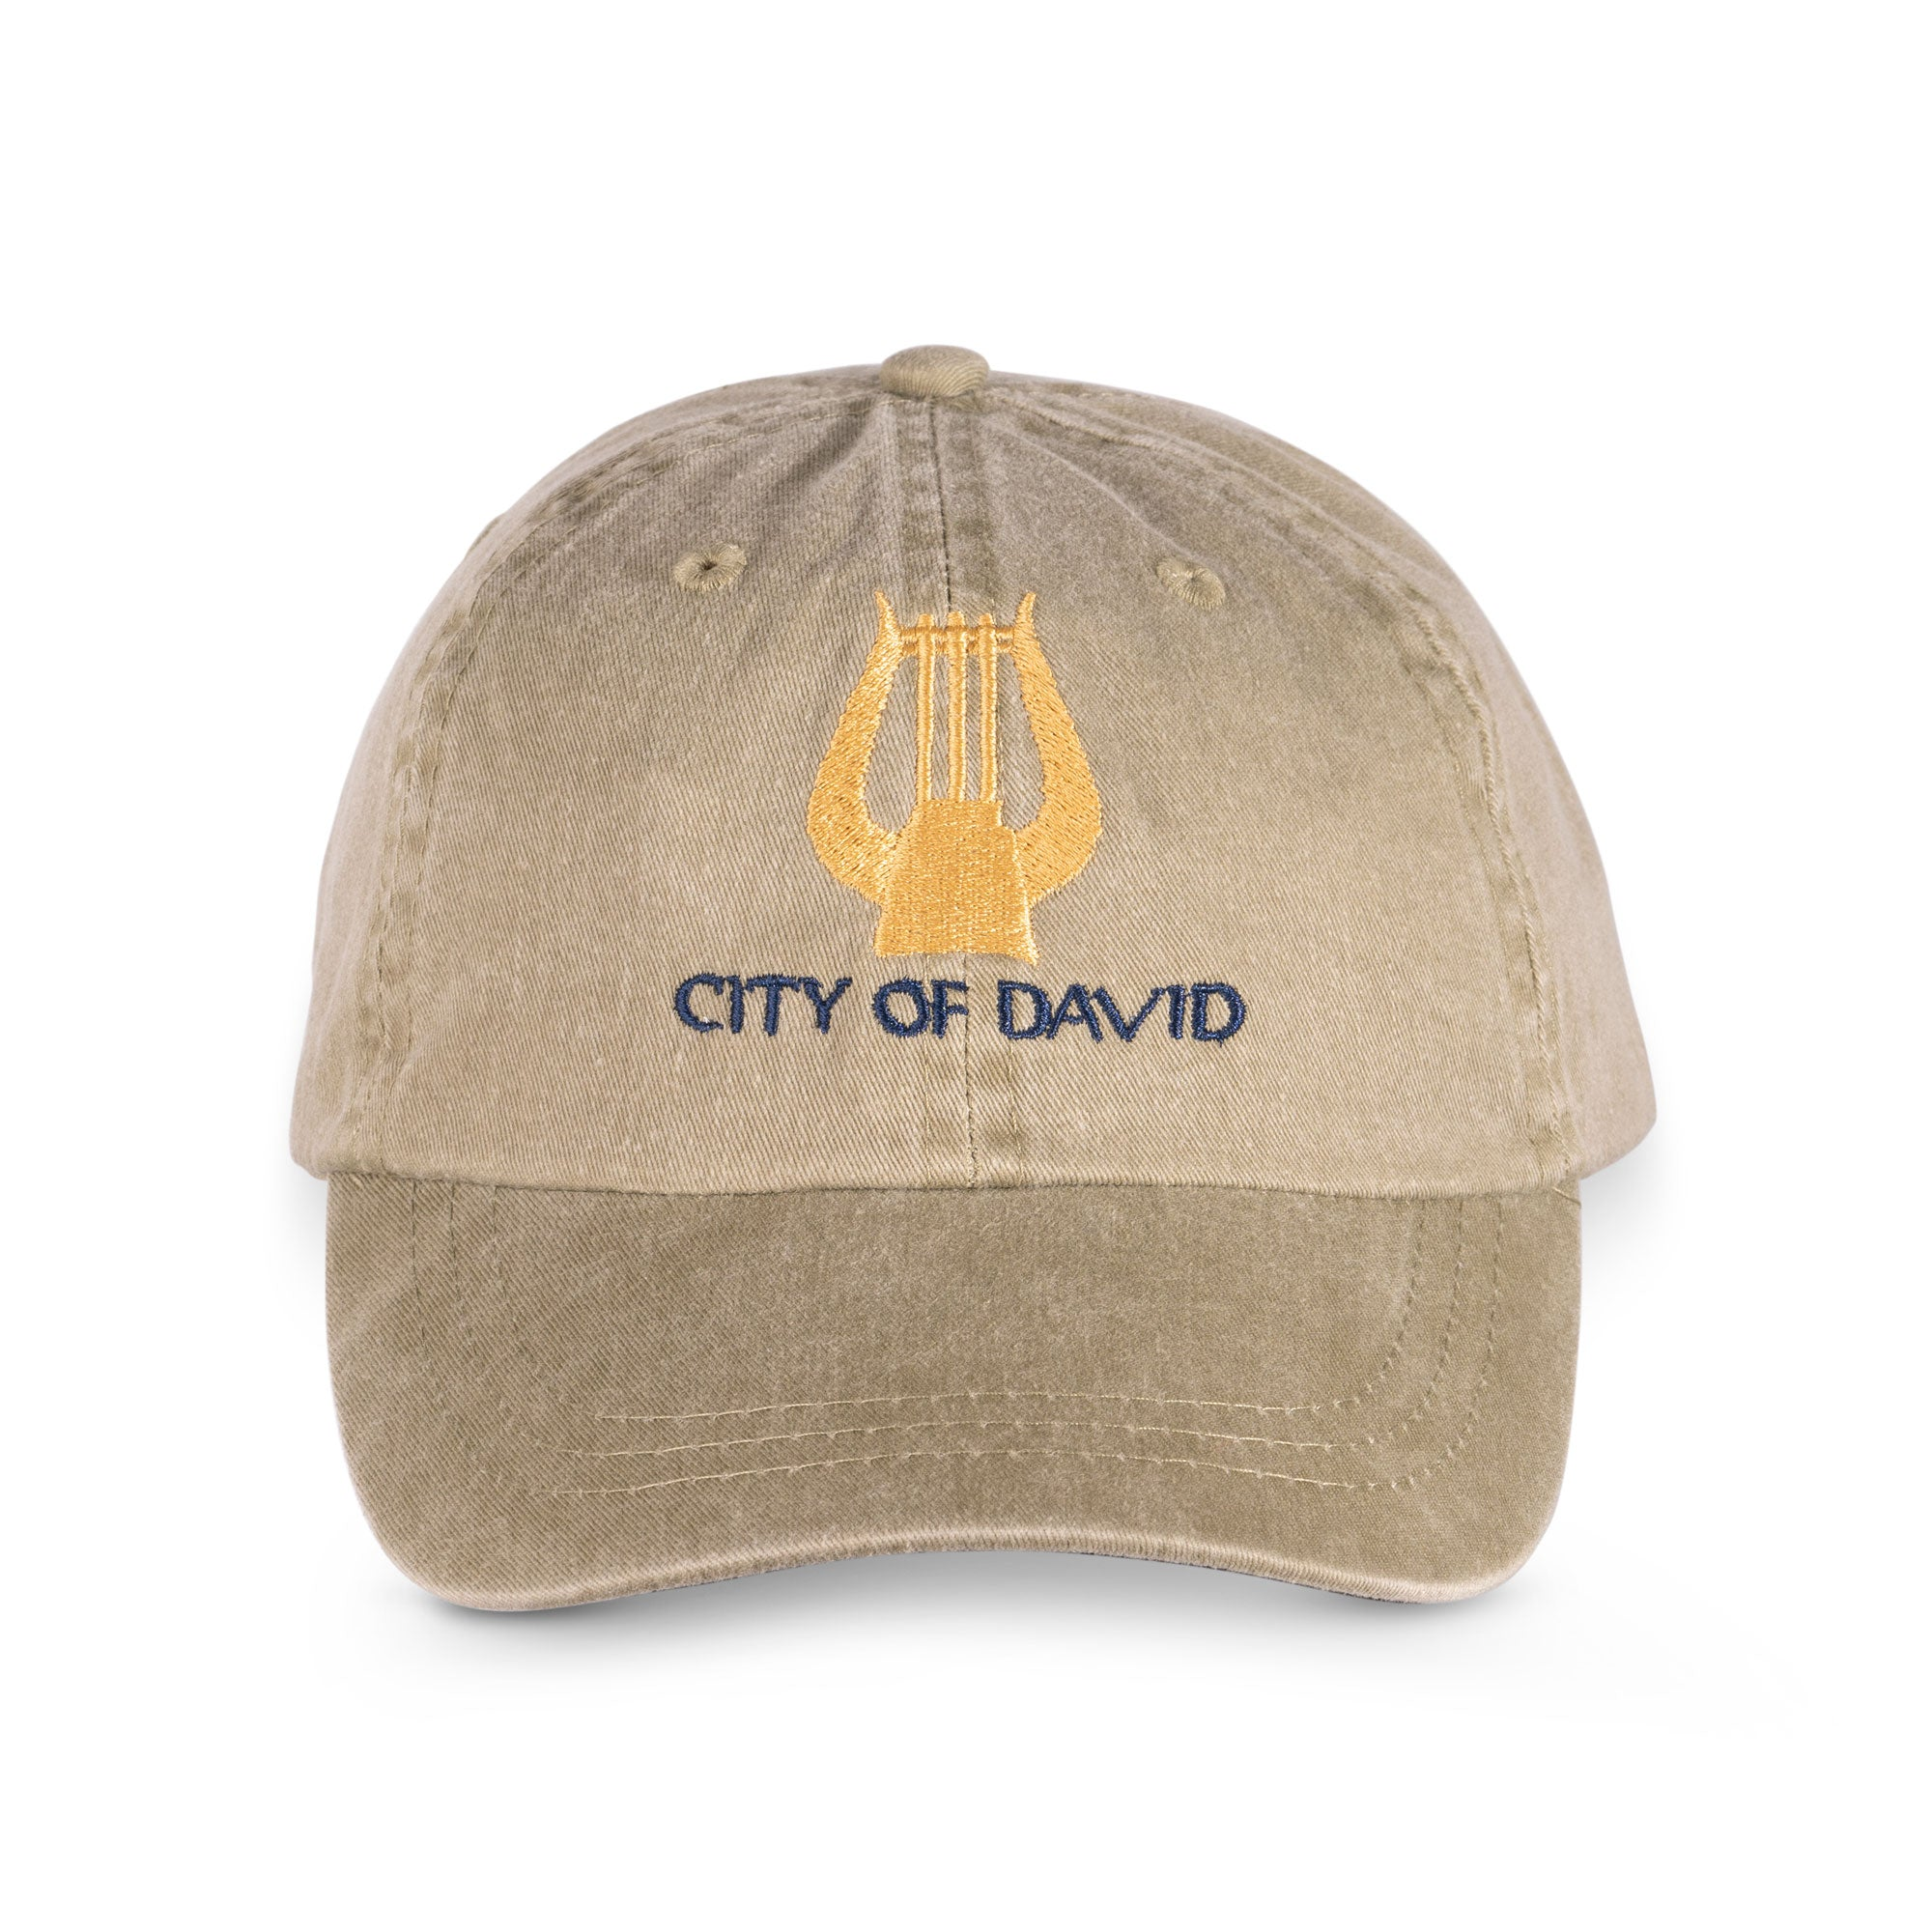 City of David  beige baseball cap